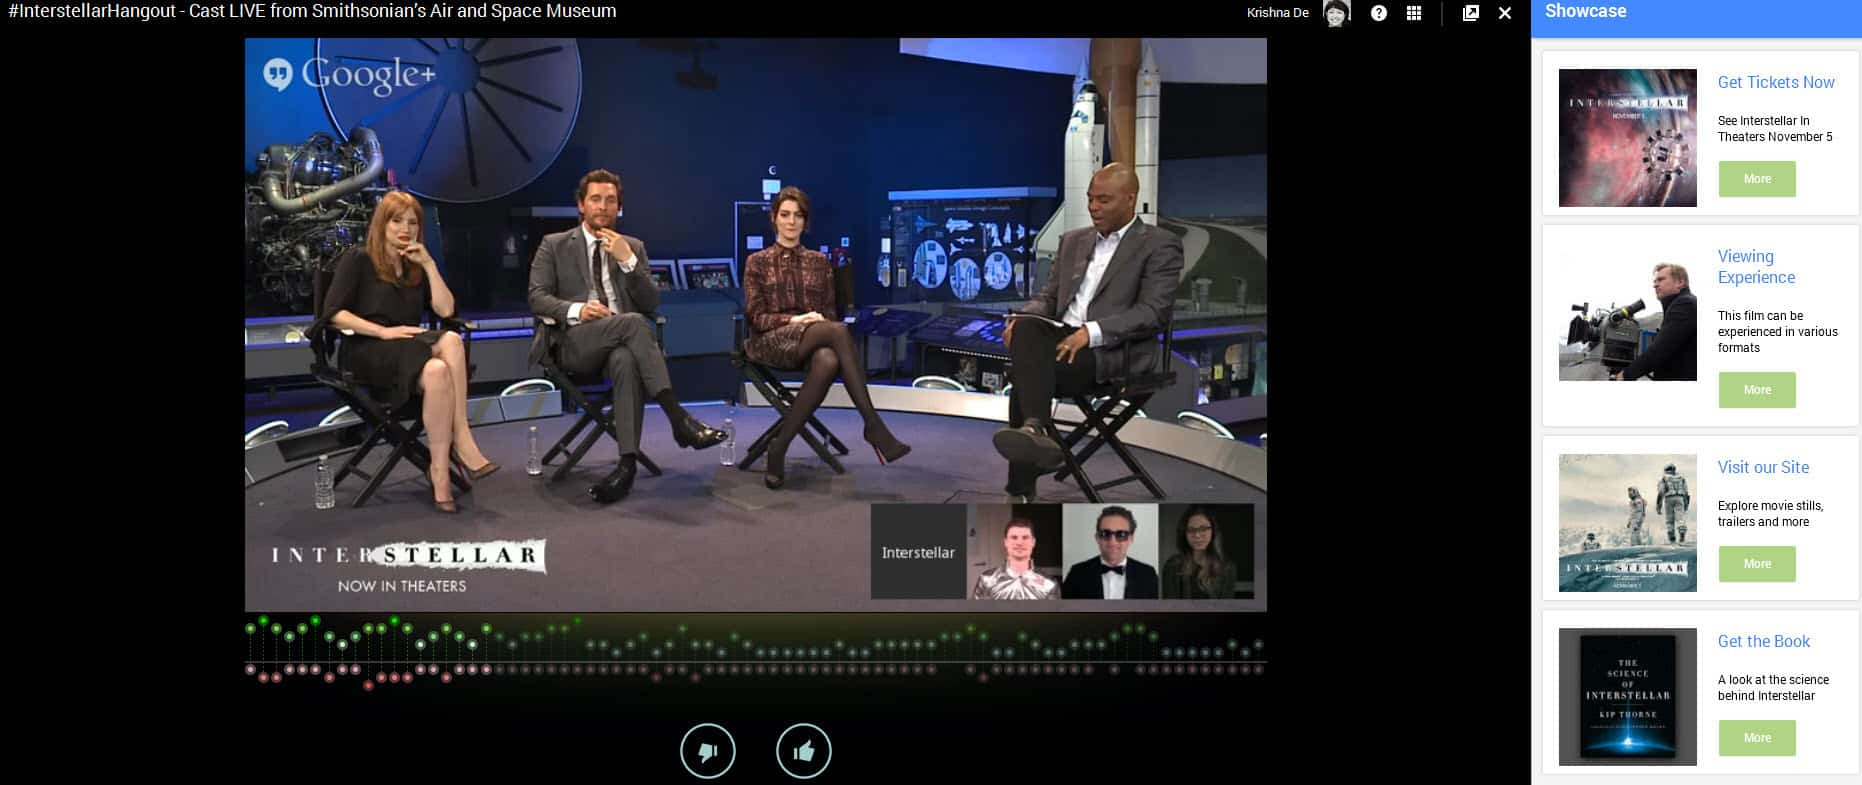 The cast of Interstellar the movie participate in a Google Hangout On air live from the Smithsonians Air and Space museum